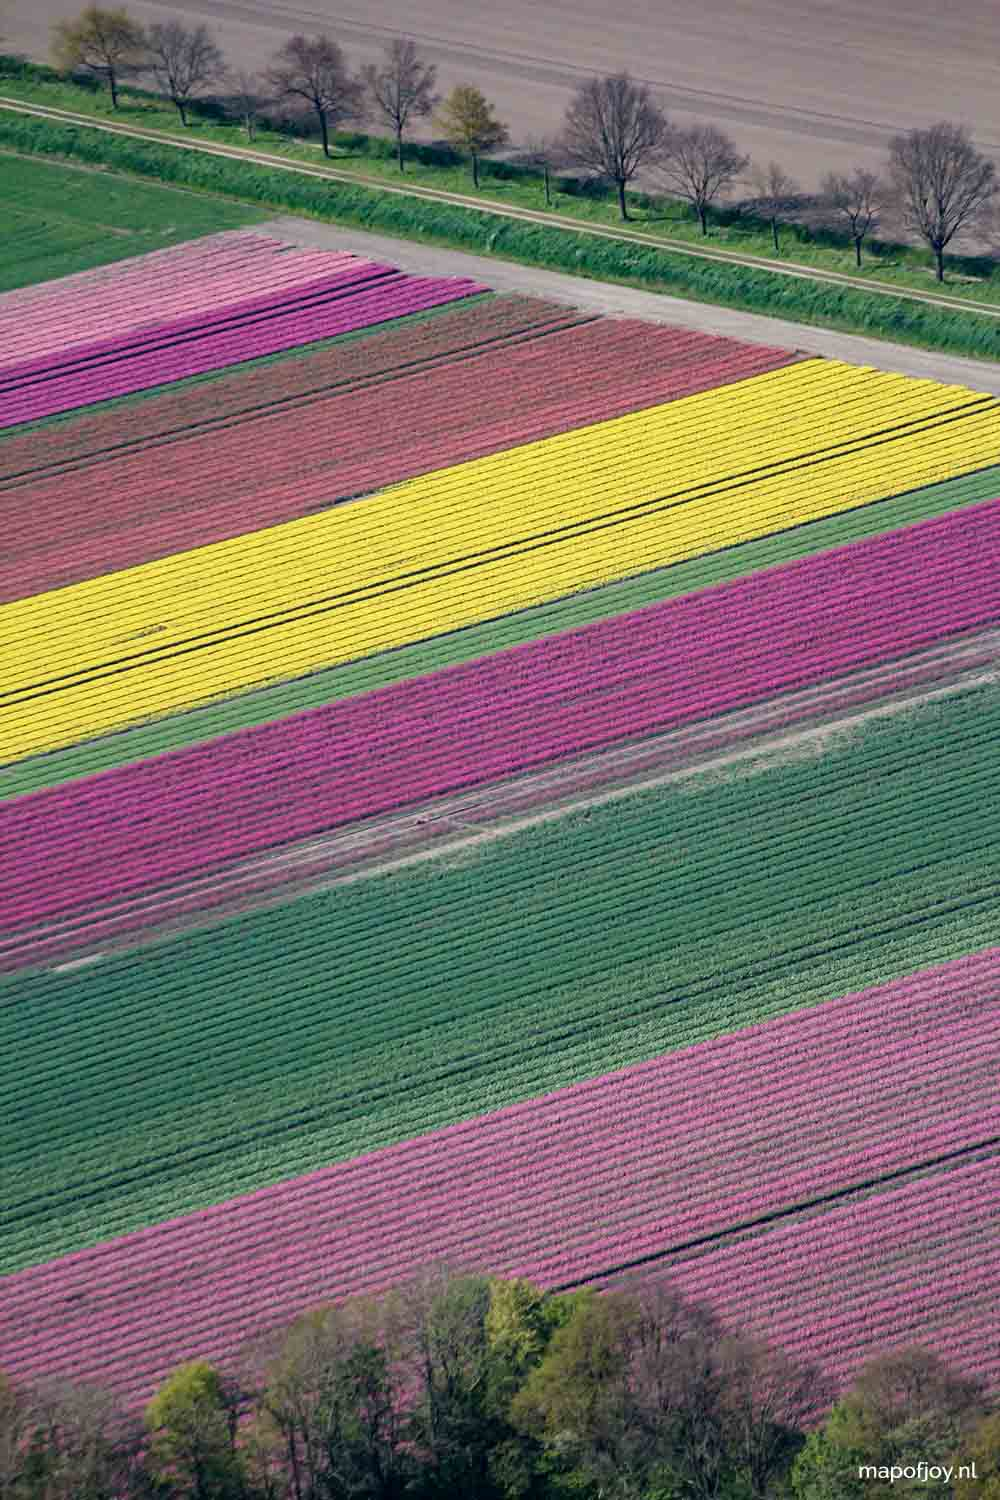 Tulpenfestival, Flevoland, Holland, luchtfoto - Map of Joy